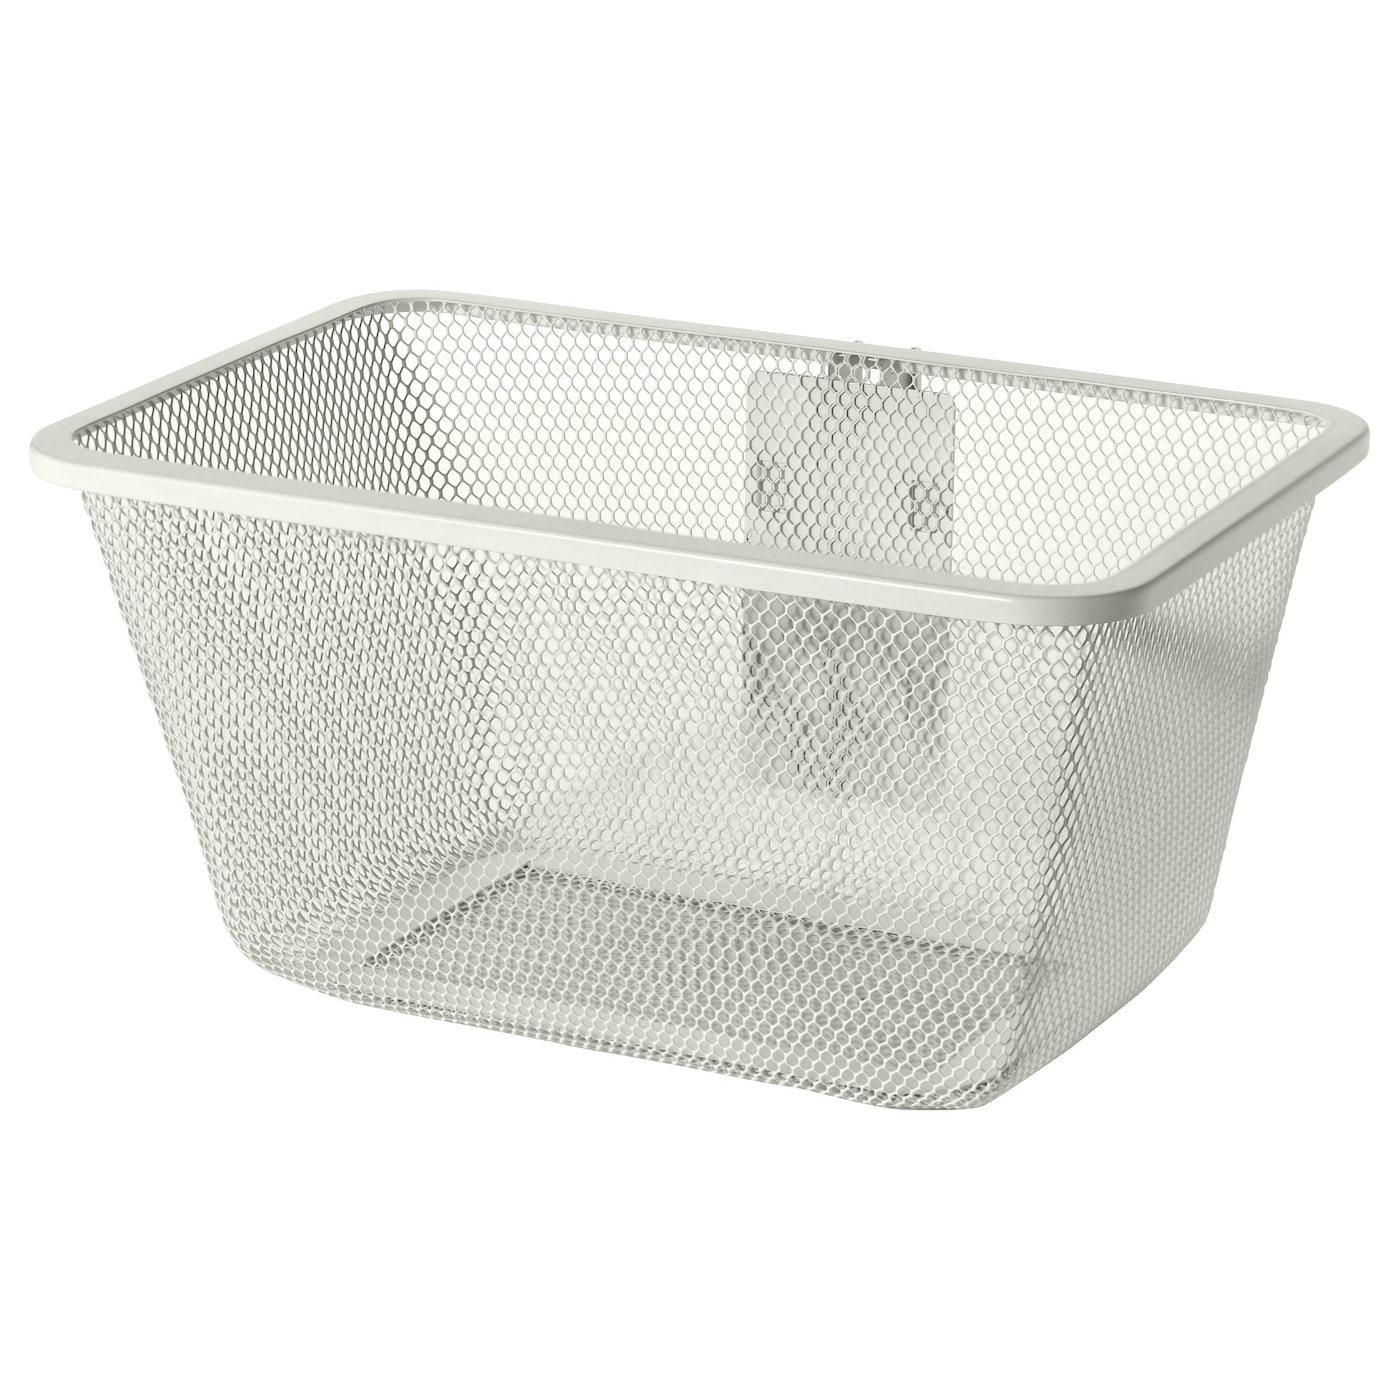 algot mesh basket with bracket white 30x22x15 cm ikea